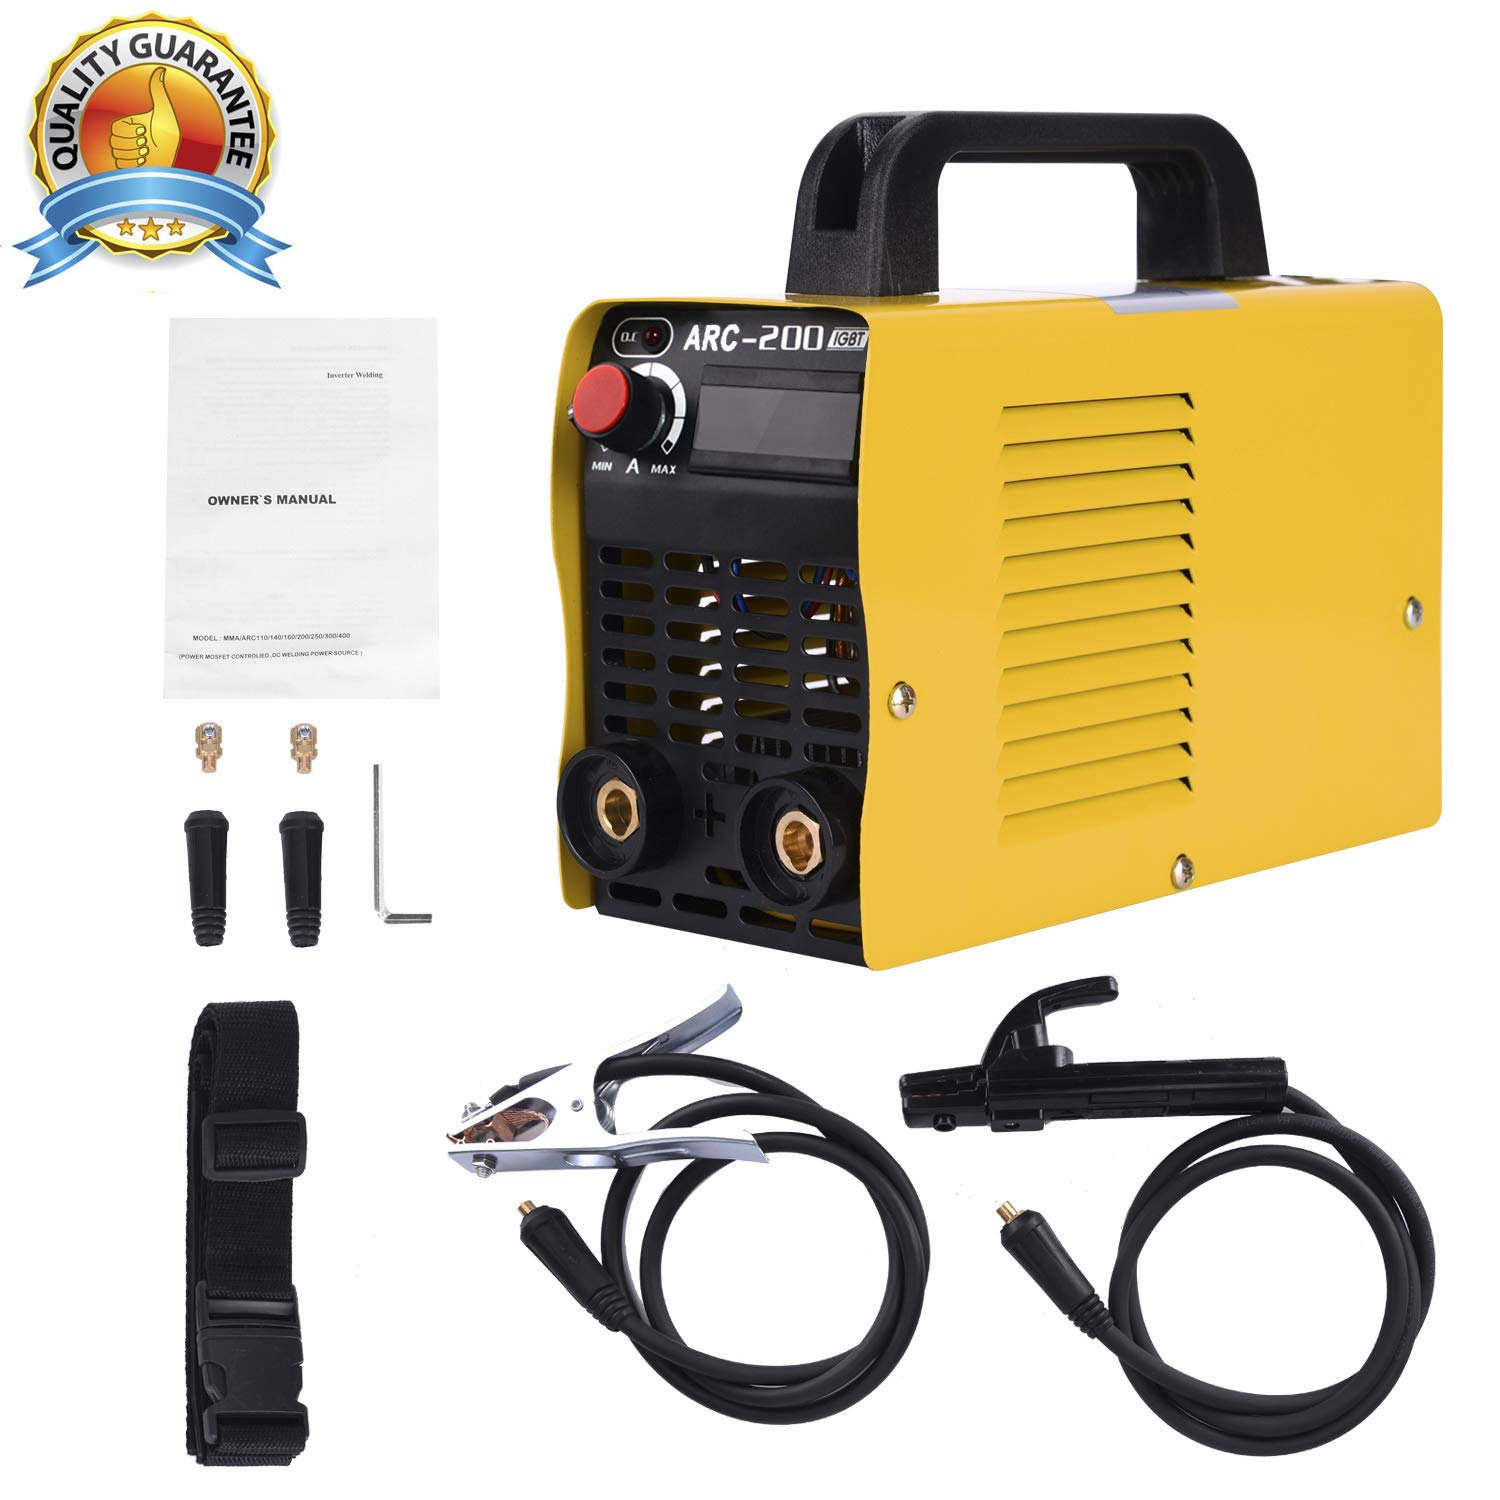 3. S7 ARC Welding Machine, 110V, 200Amp Power, IGBT AC DC Beginner Welder